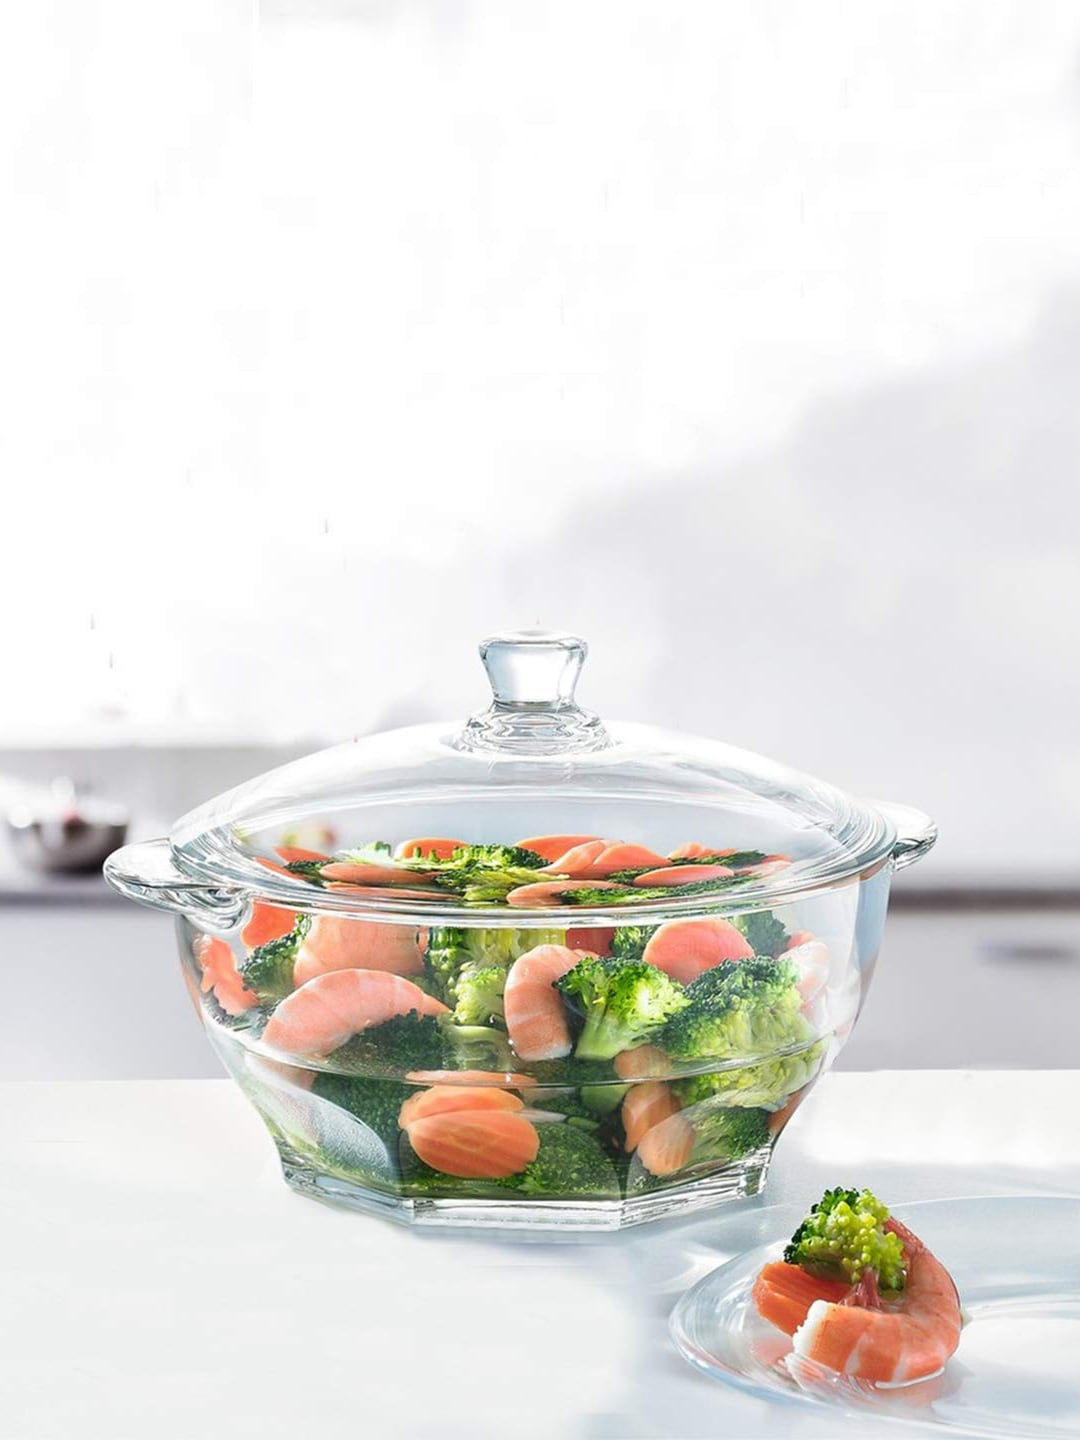 INCRIZMA Transparent Solid Tempered Glass Casserole with Lid